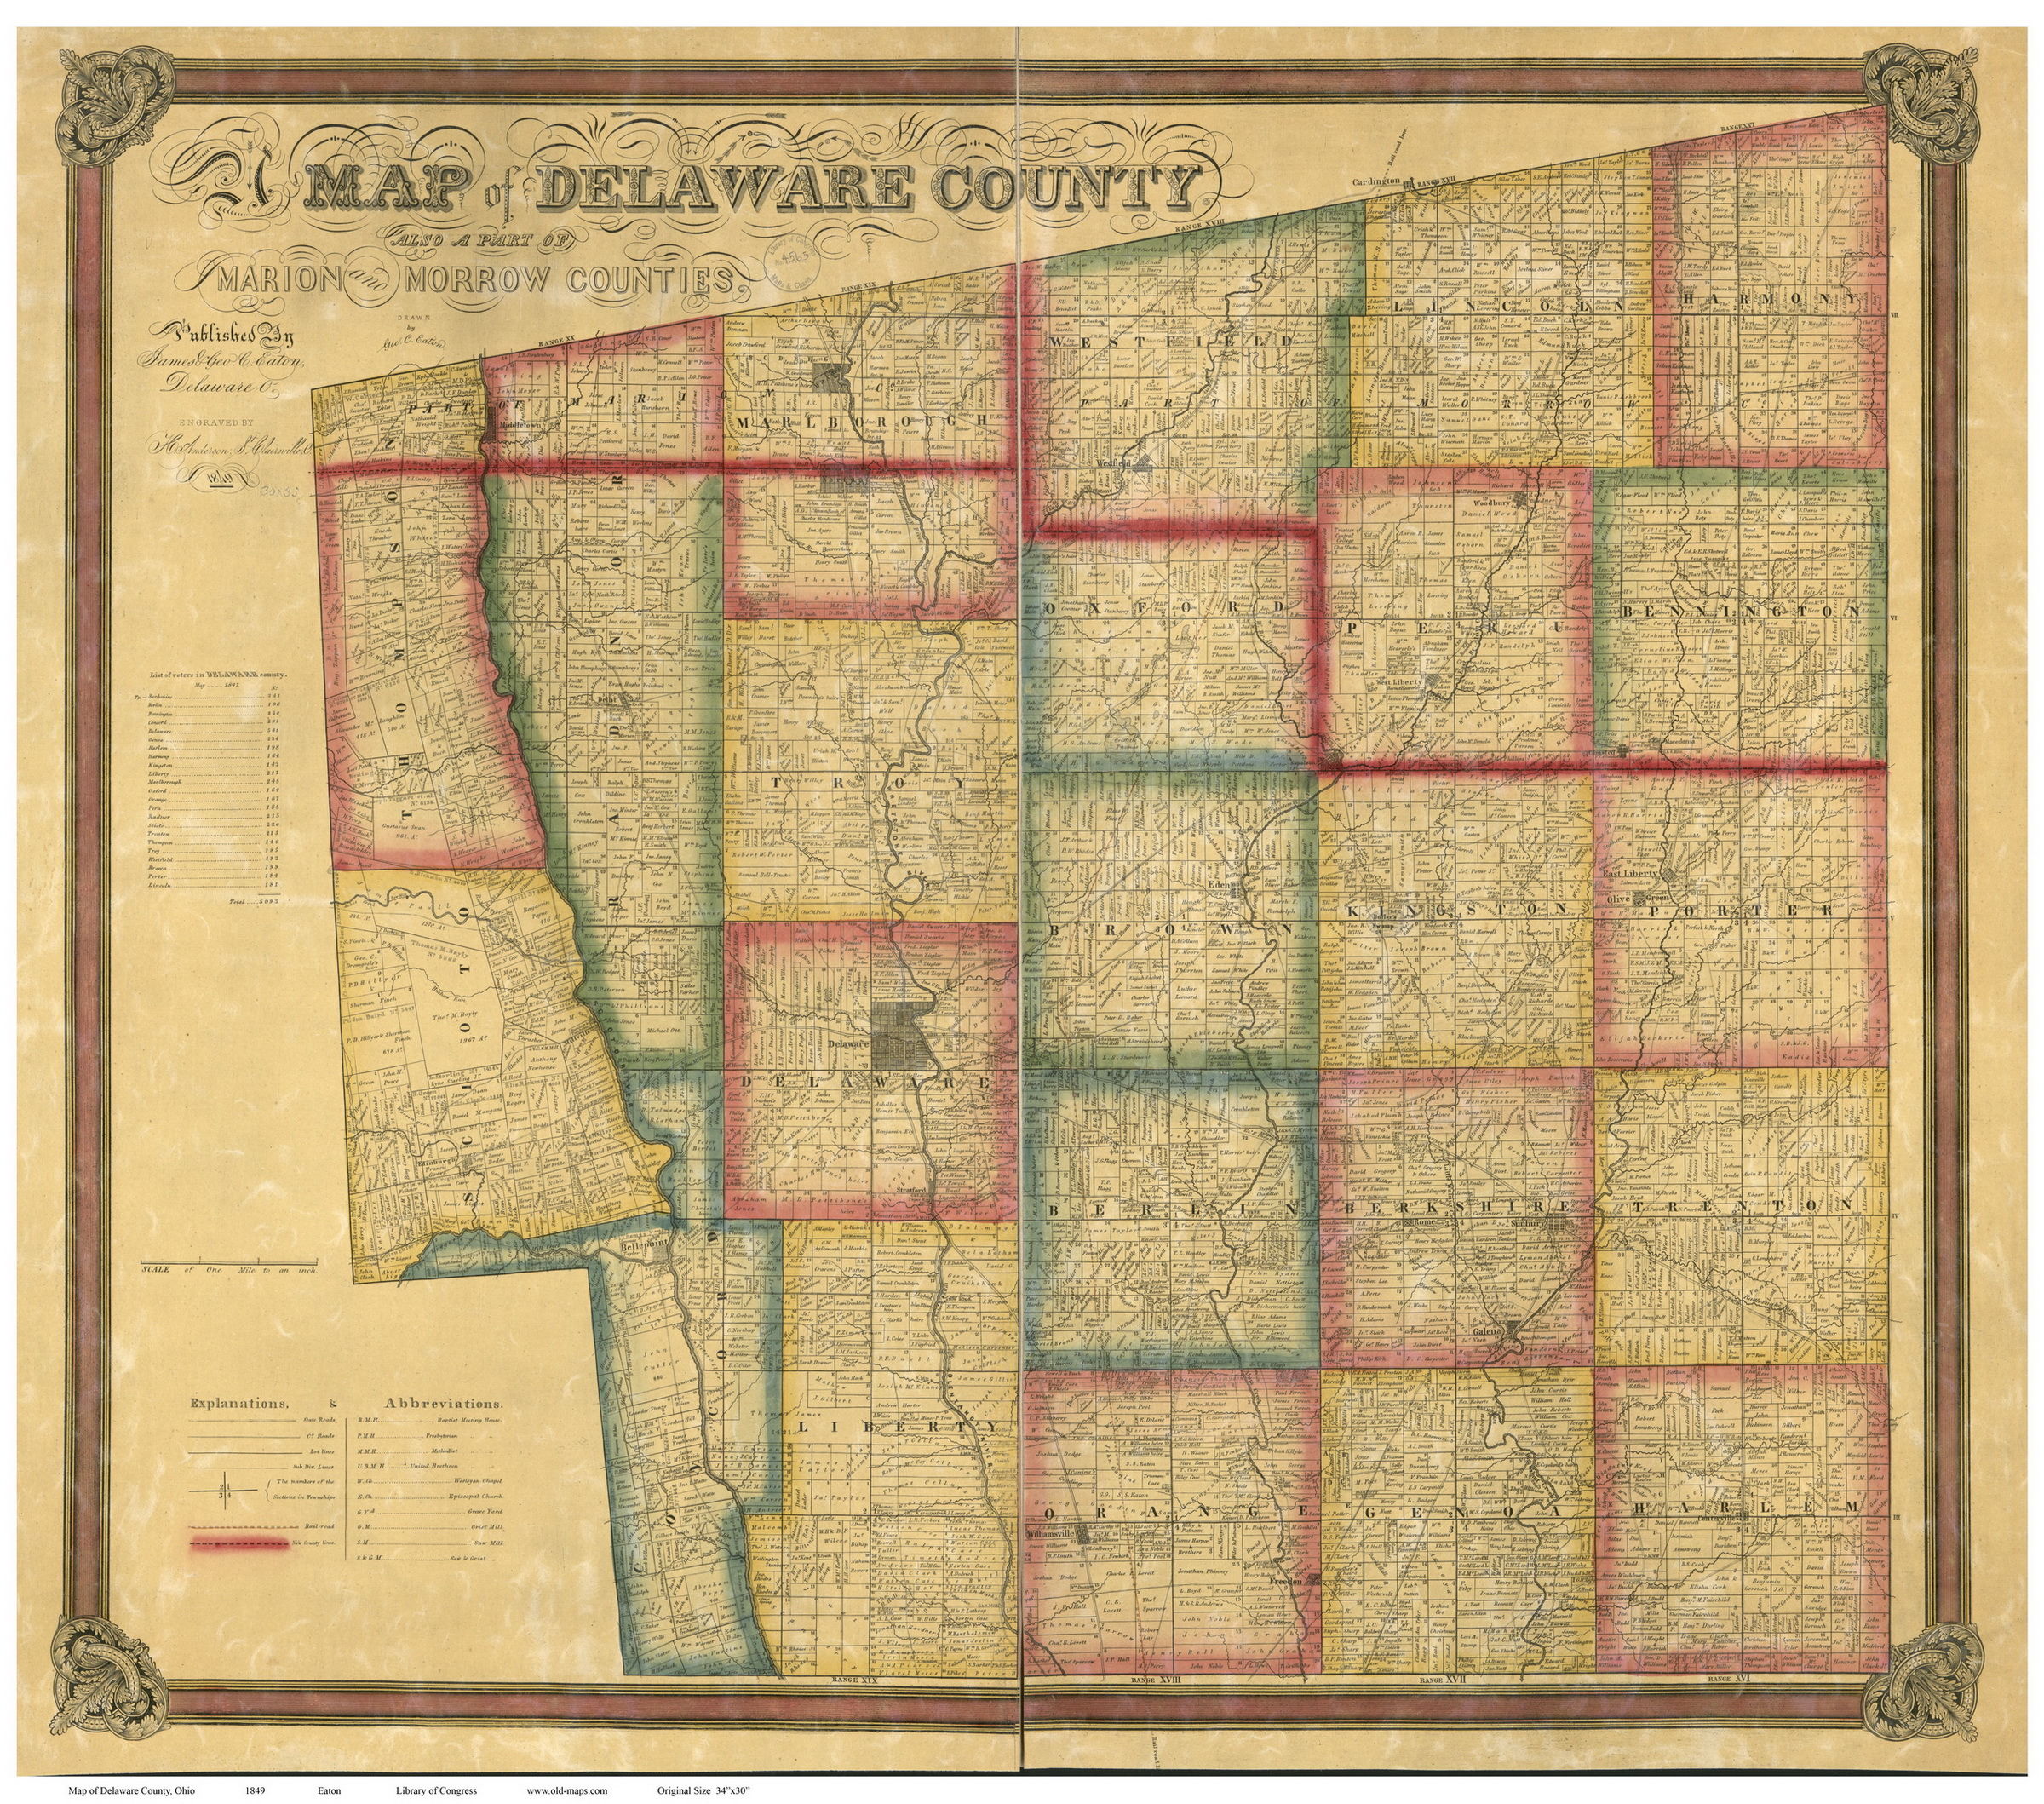 Old Maps - Antique map reproductions for sale